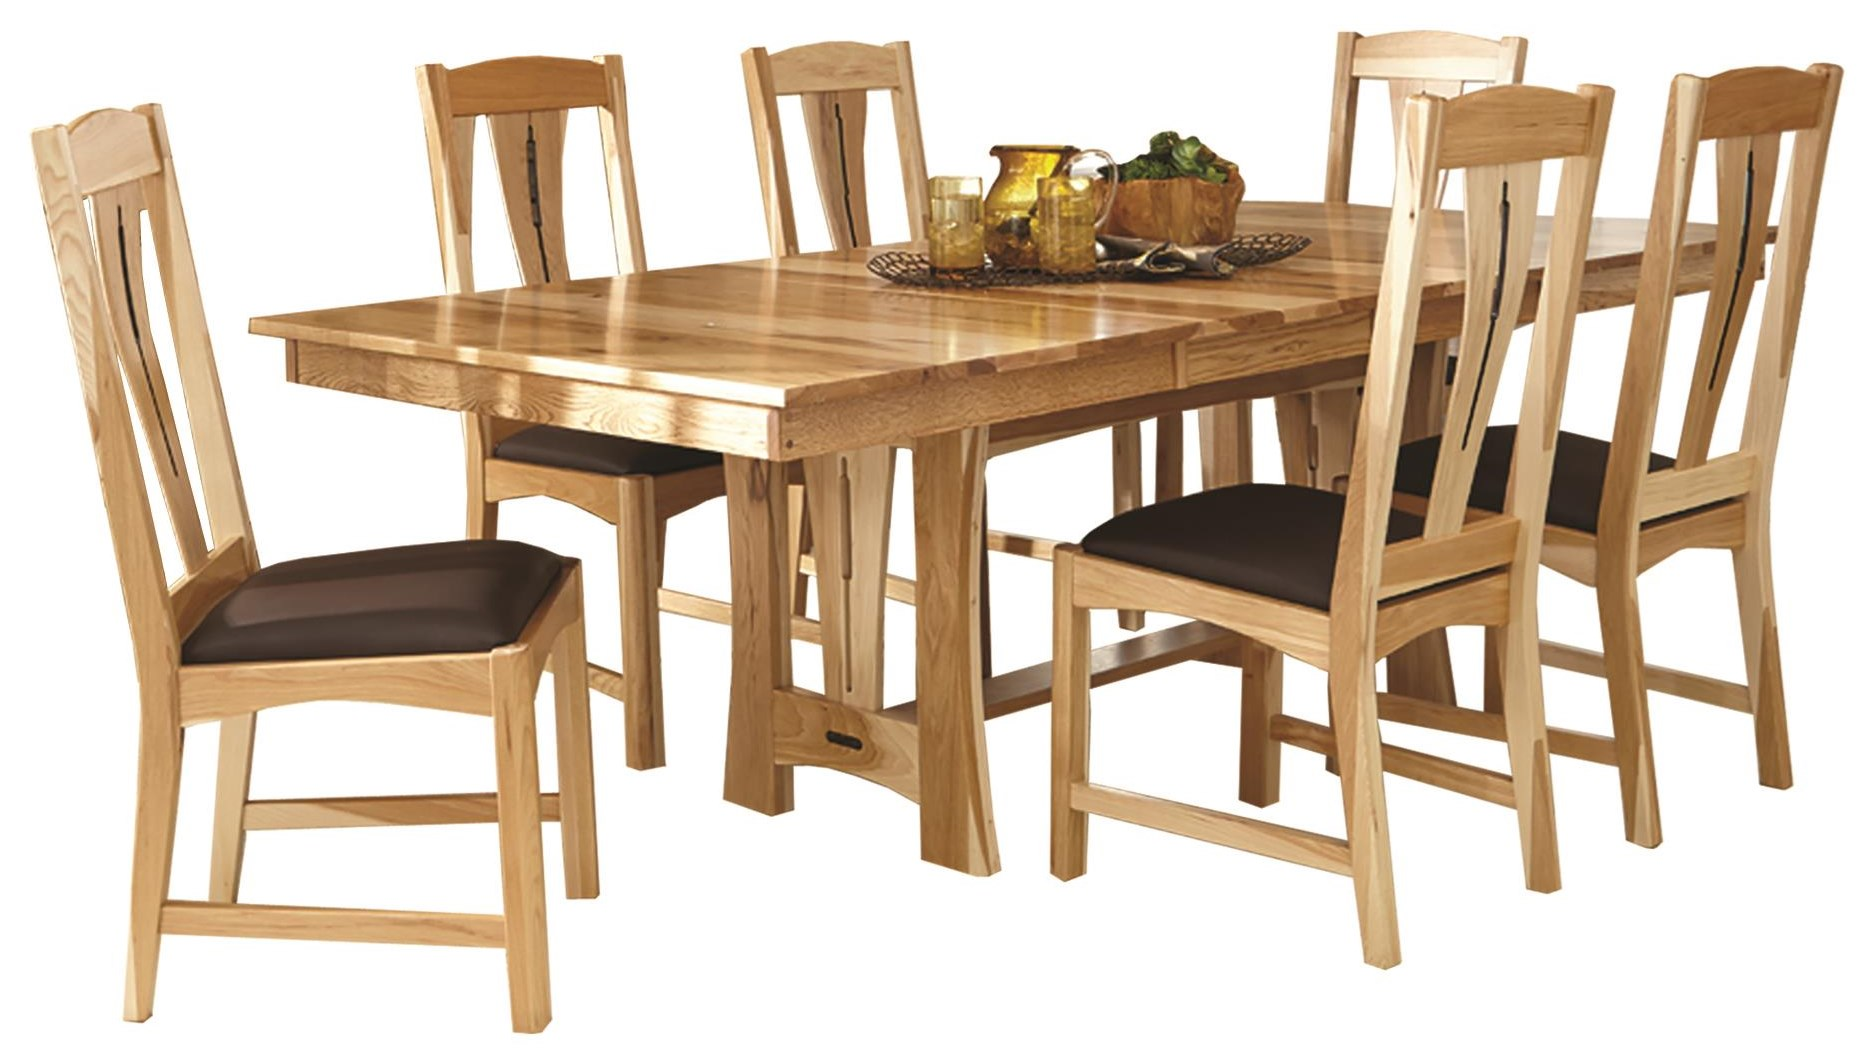 14409 5-Piece Trestle Table Dining Set at Sadler's Home Furnishings